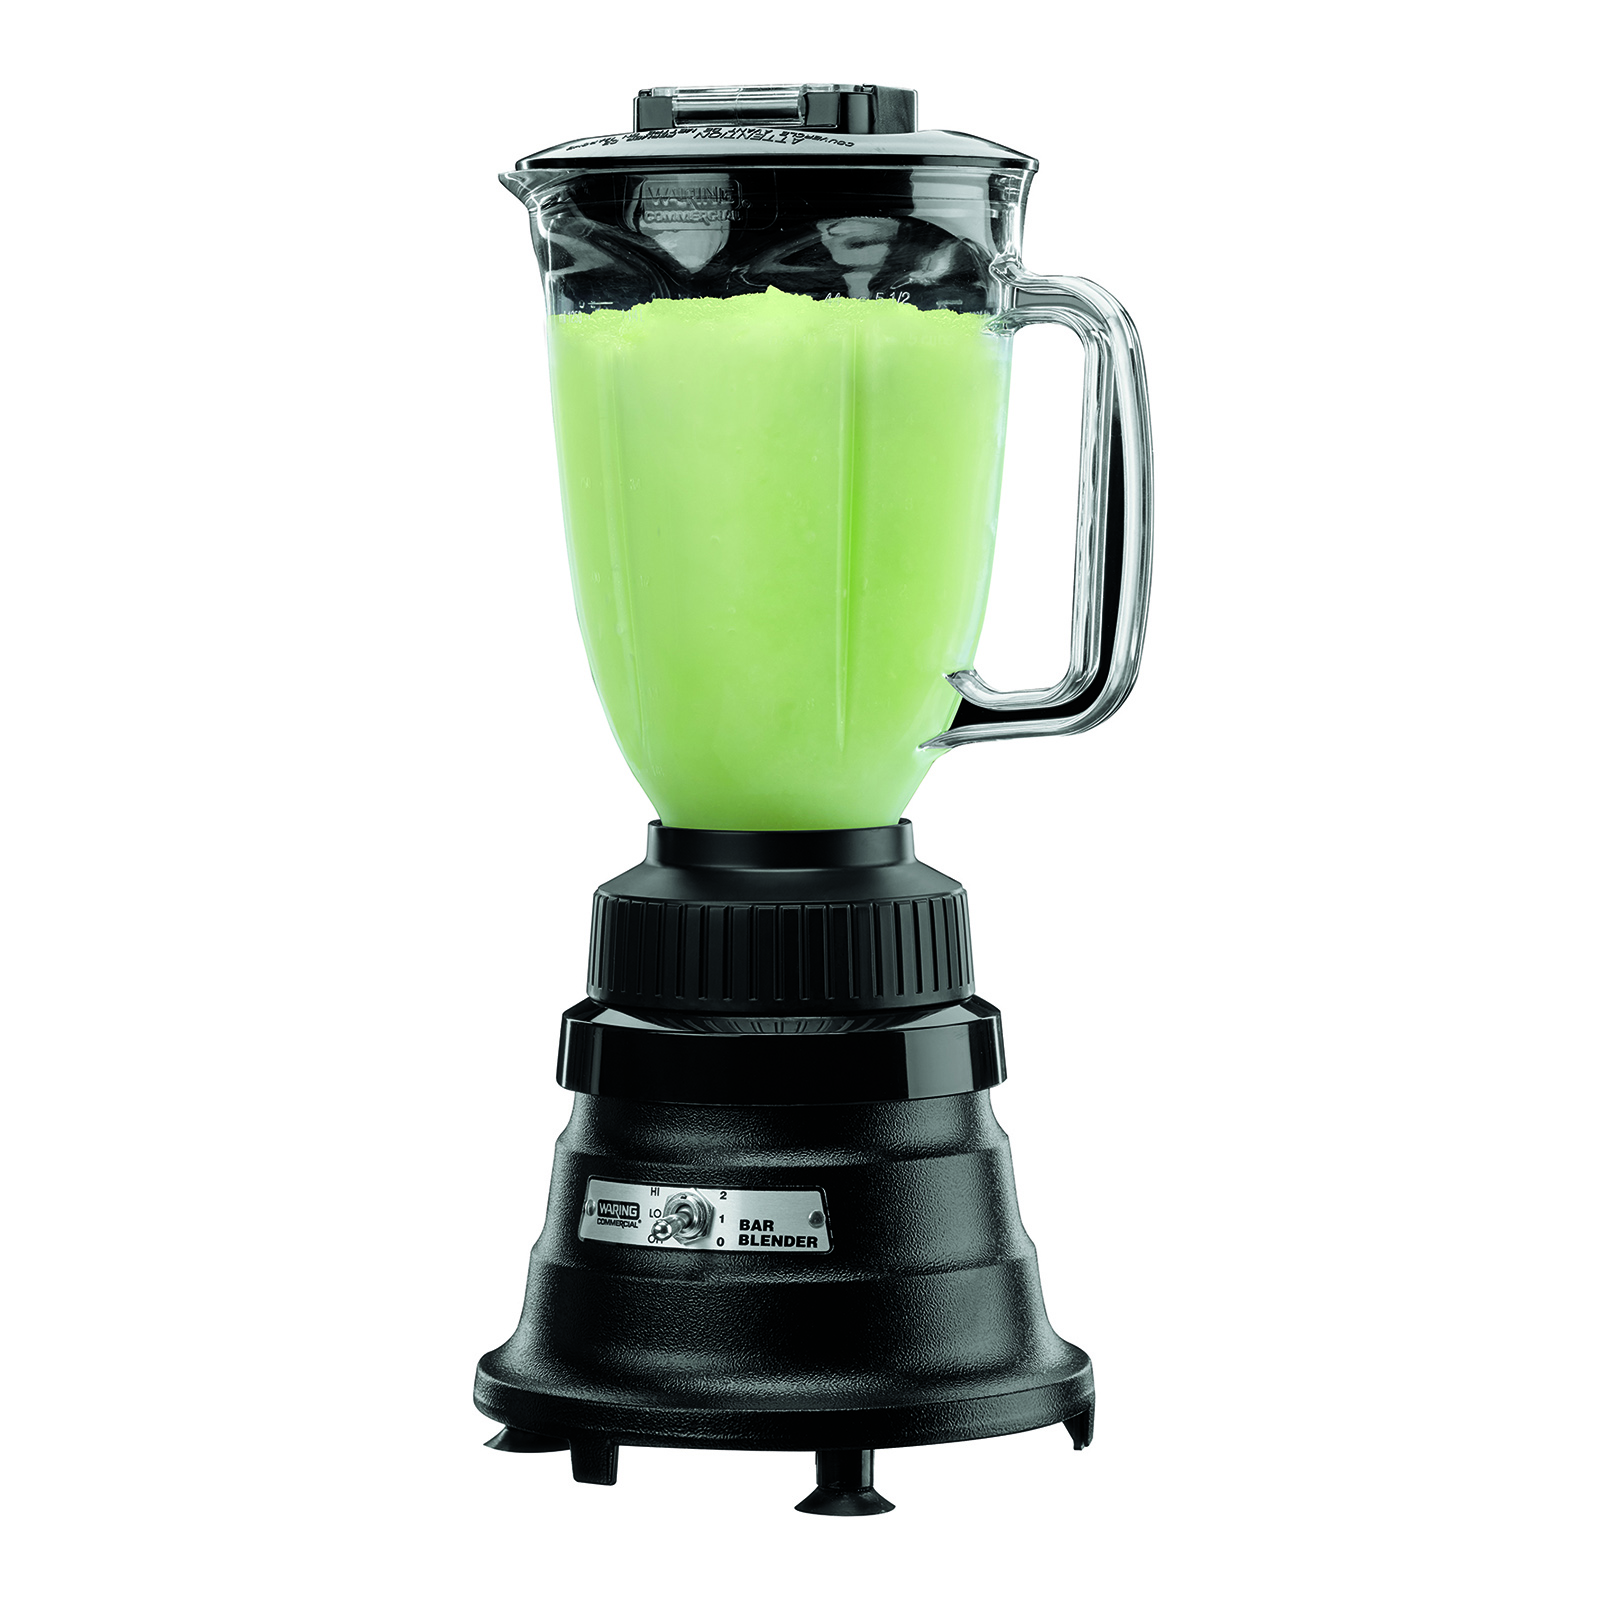 Waring BB155 blender, bar